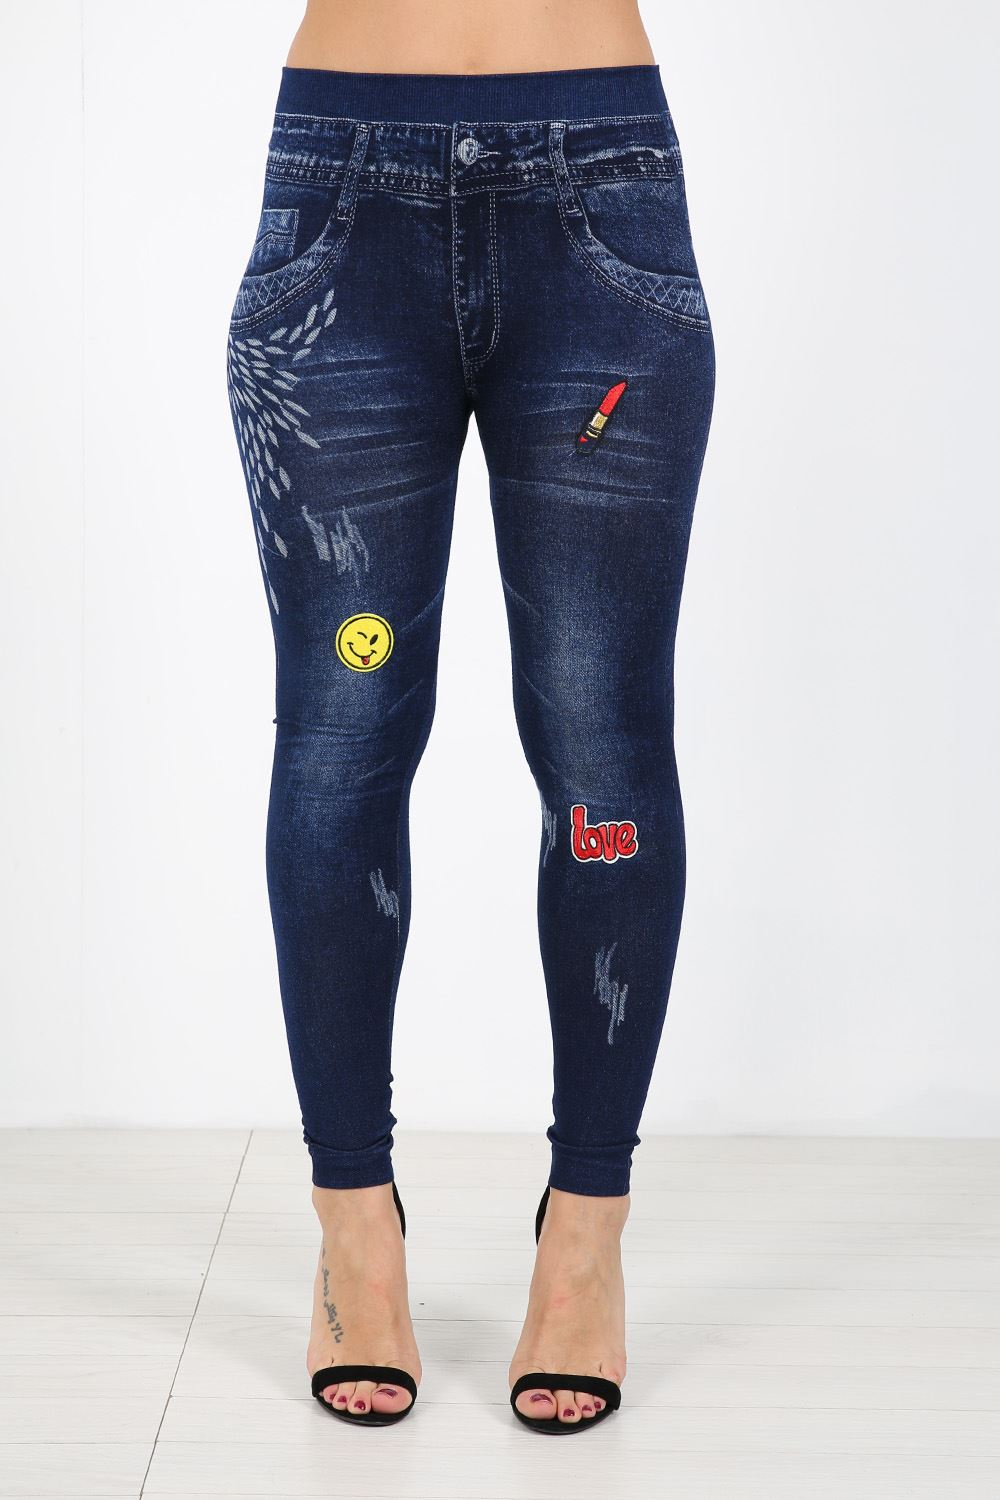 Wonderful Womens Ladies Embroidered Denim High Waisted Skinny Fit Stretch Jeans   EBay